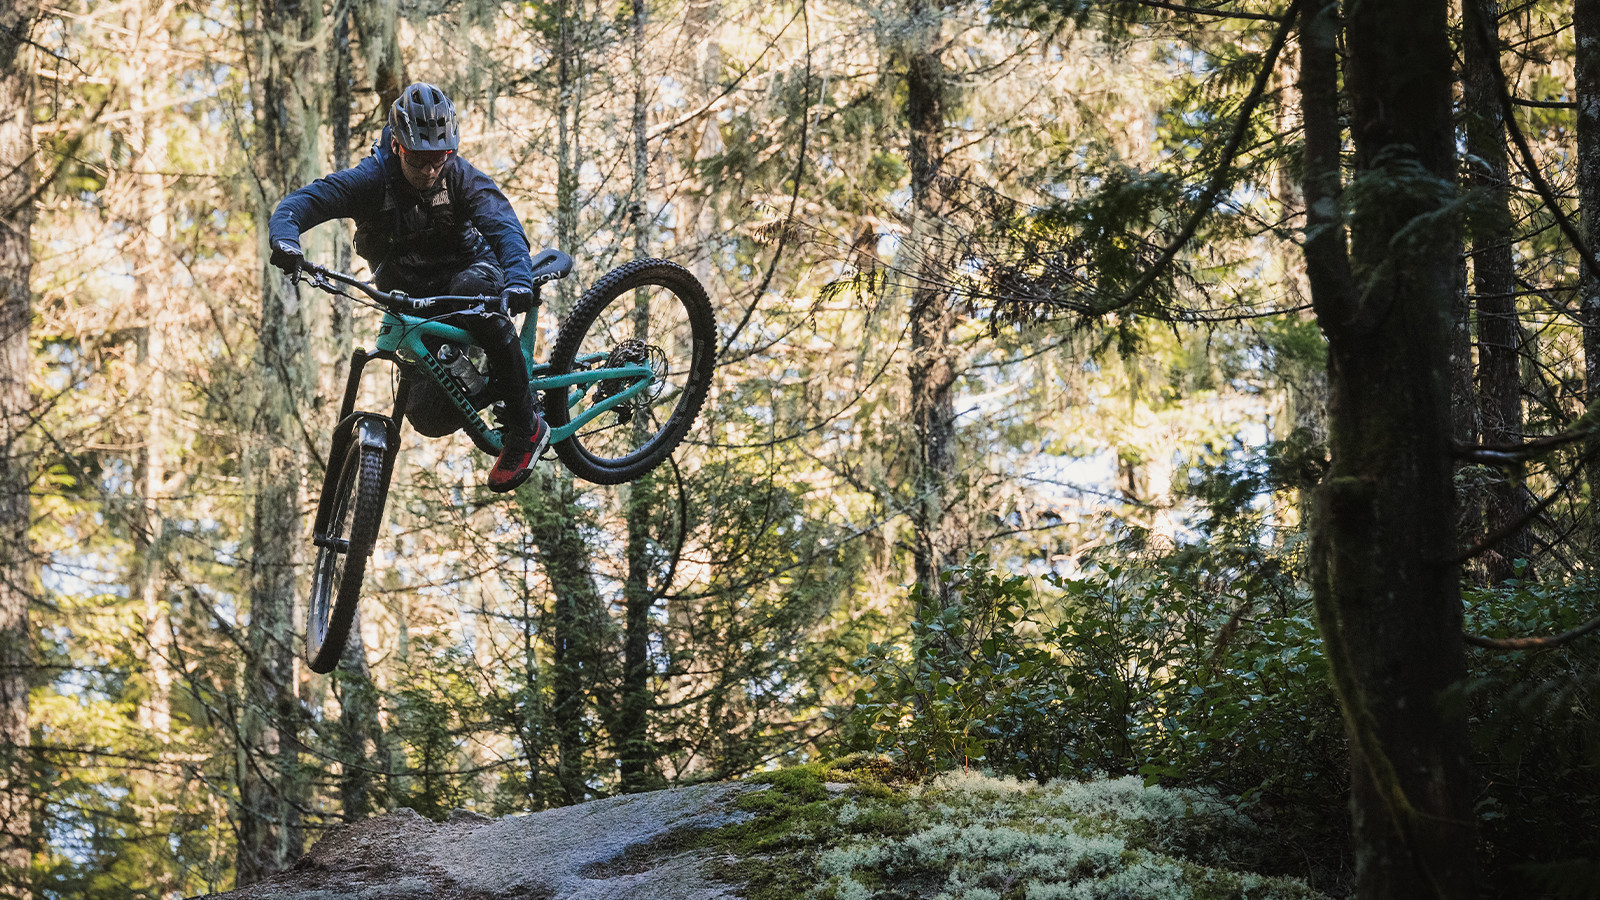 Remy Metailler Makes the Move to Propain Bicycles for 2021